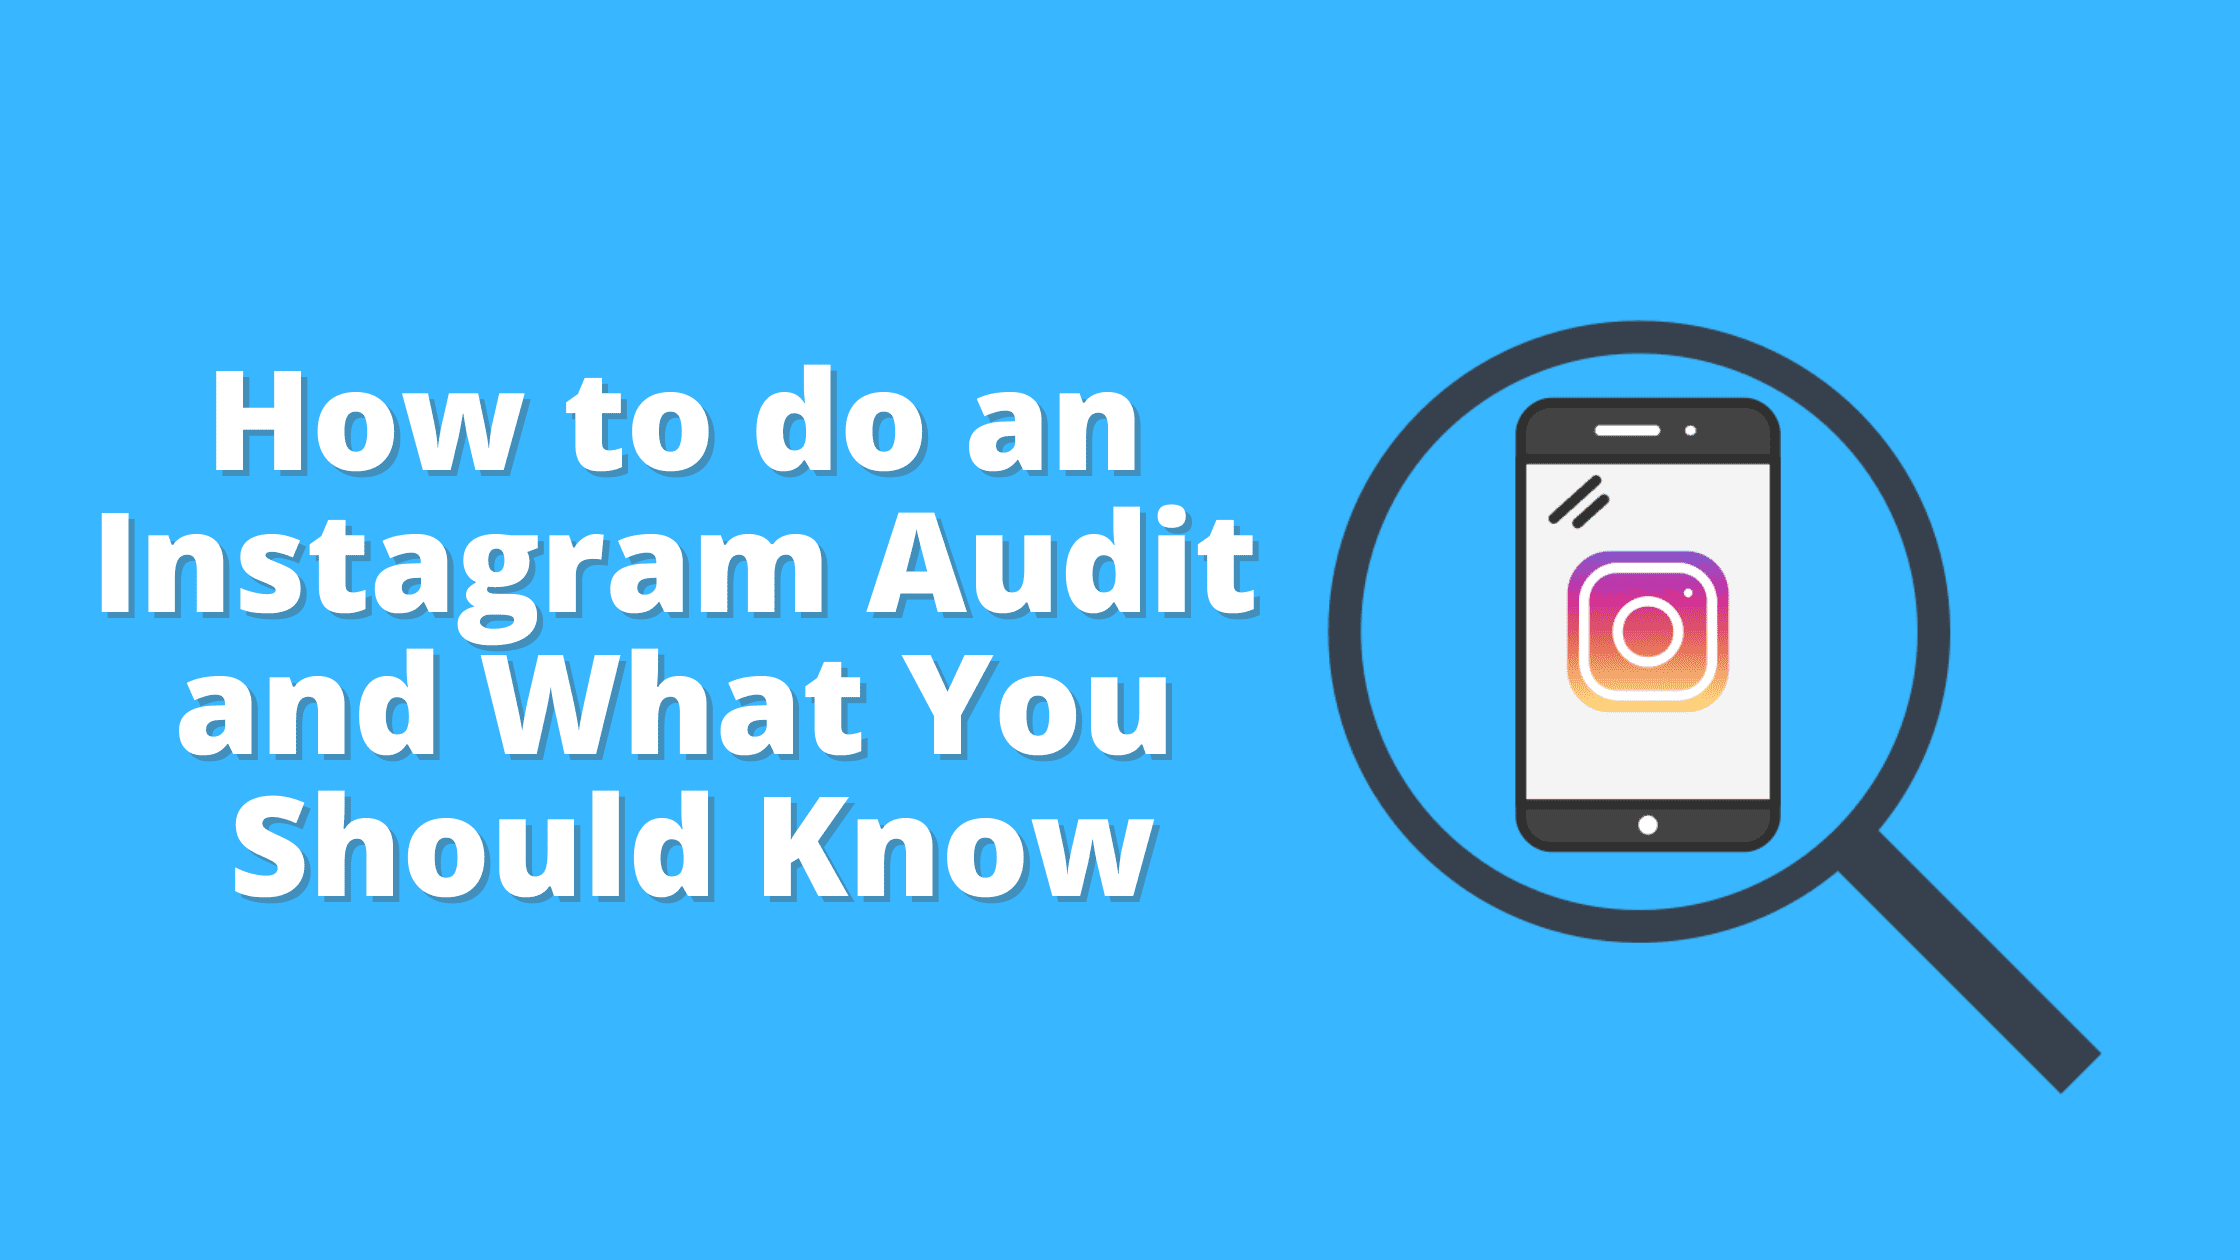 How to do an Instagram Audit and What You Should Know